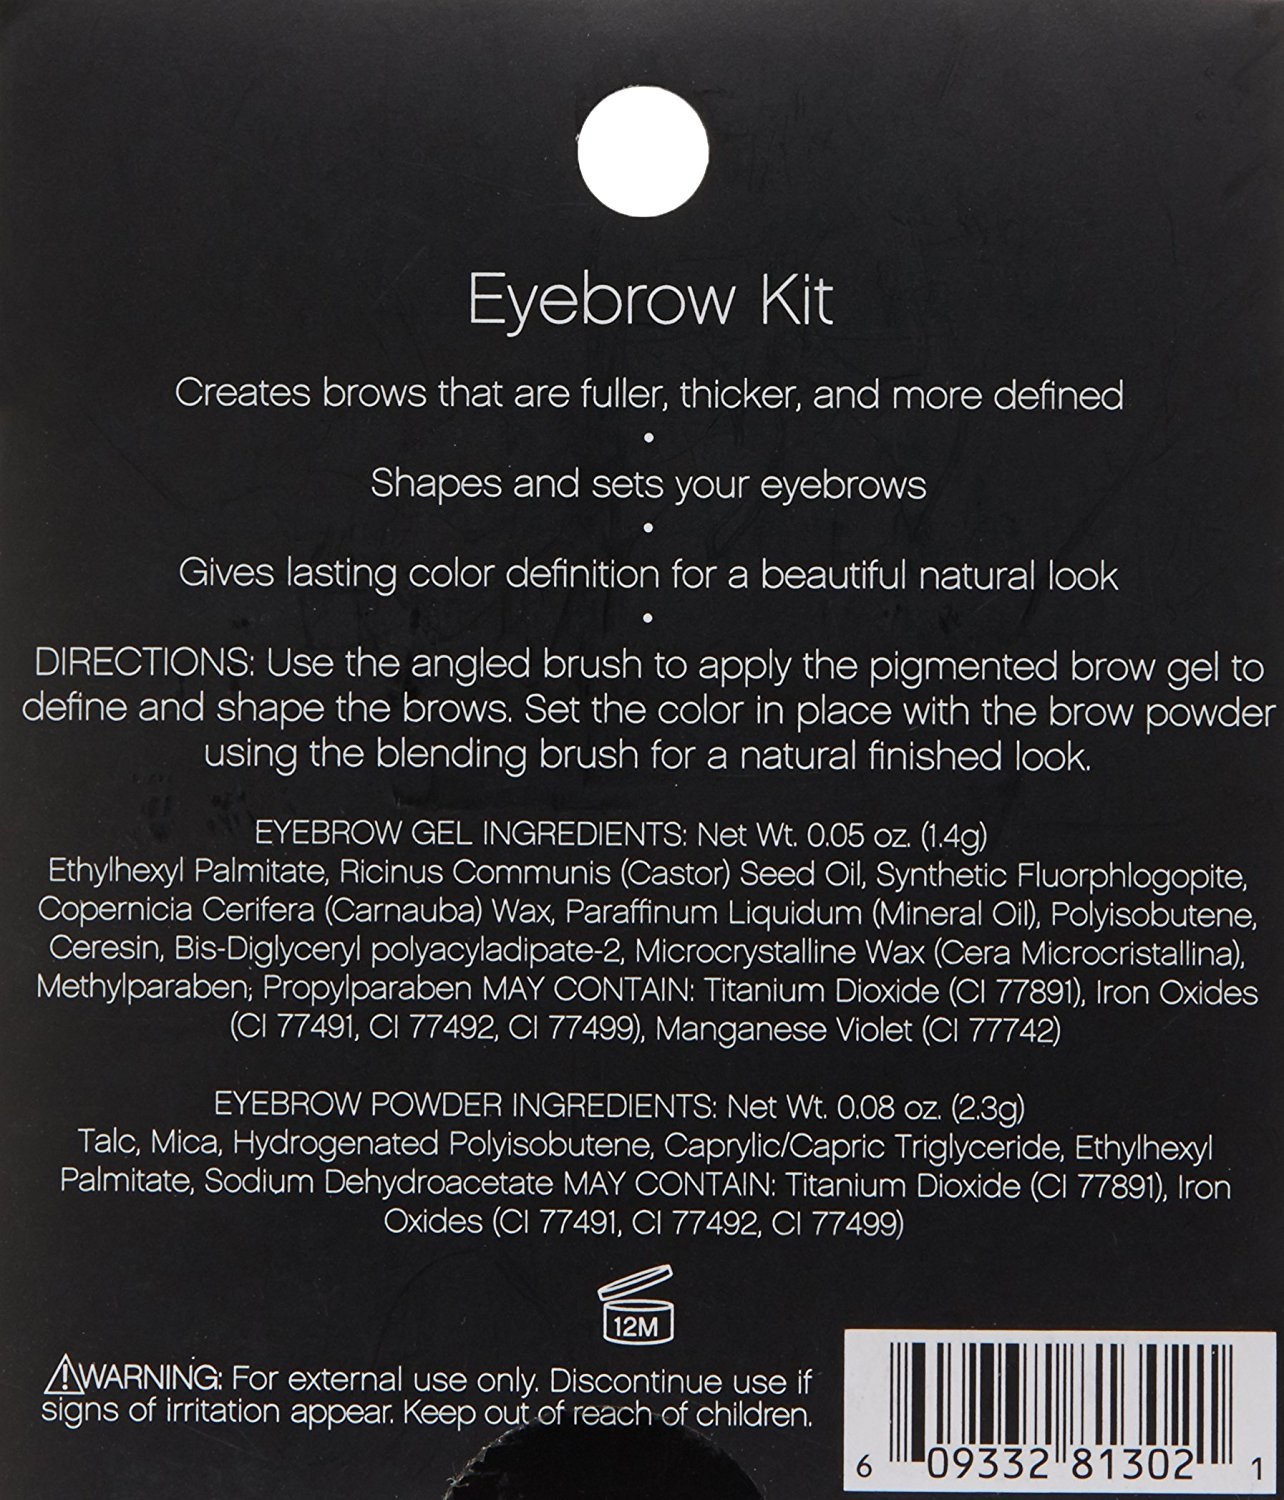 Top 10 Best Eyebrow Products for Beginners - Reviews of Eyebrow Products